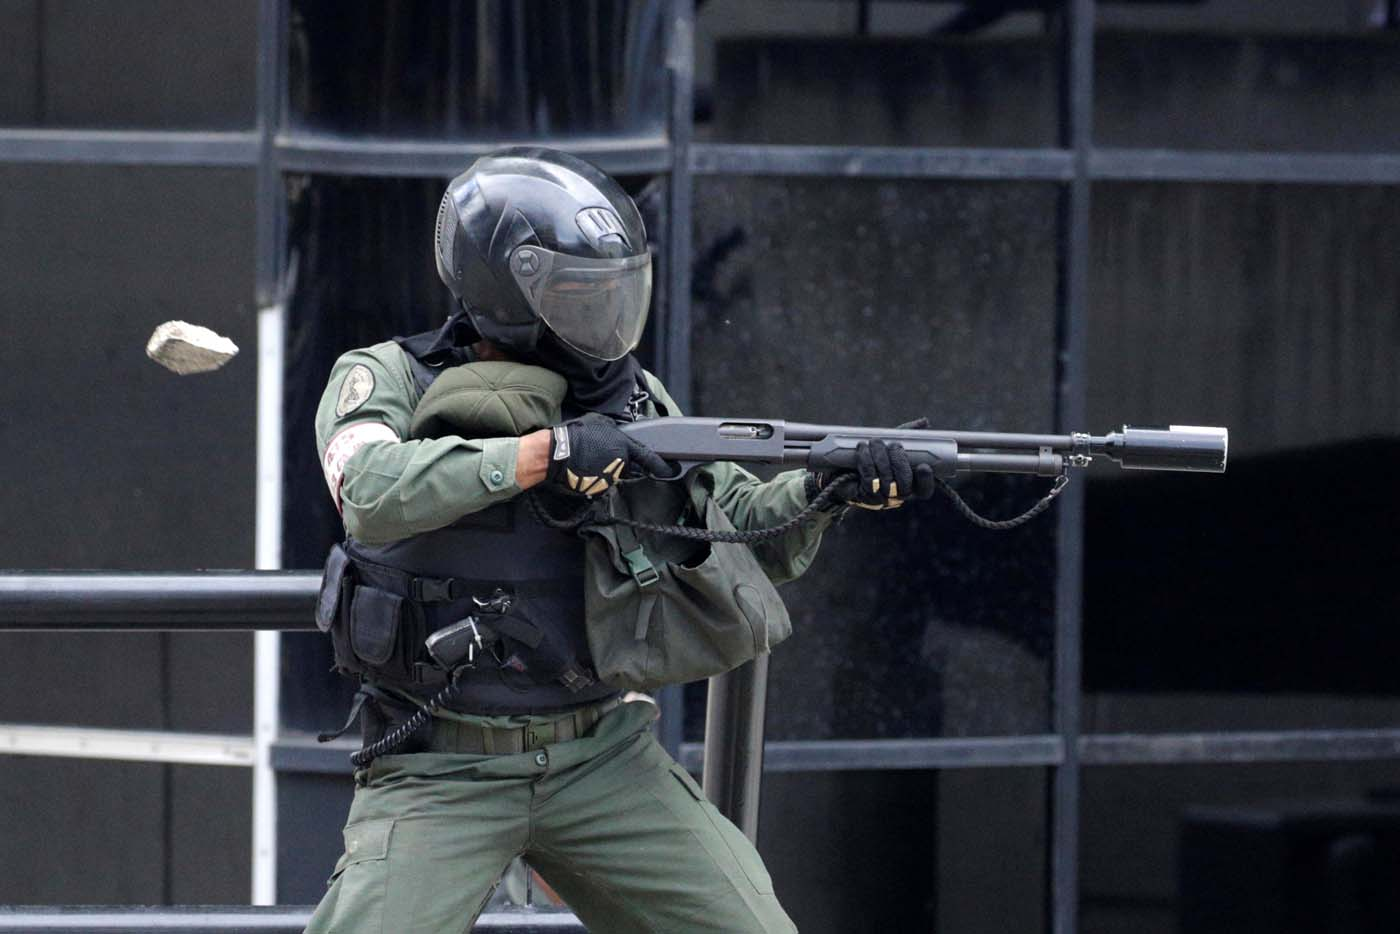 Riot police fire tear gas while clashing with opposition supporters rallying against President Nicolas Maduro in Caracas, Venezuela May 3, 2017. REUTERS/Marco Bello